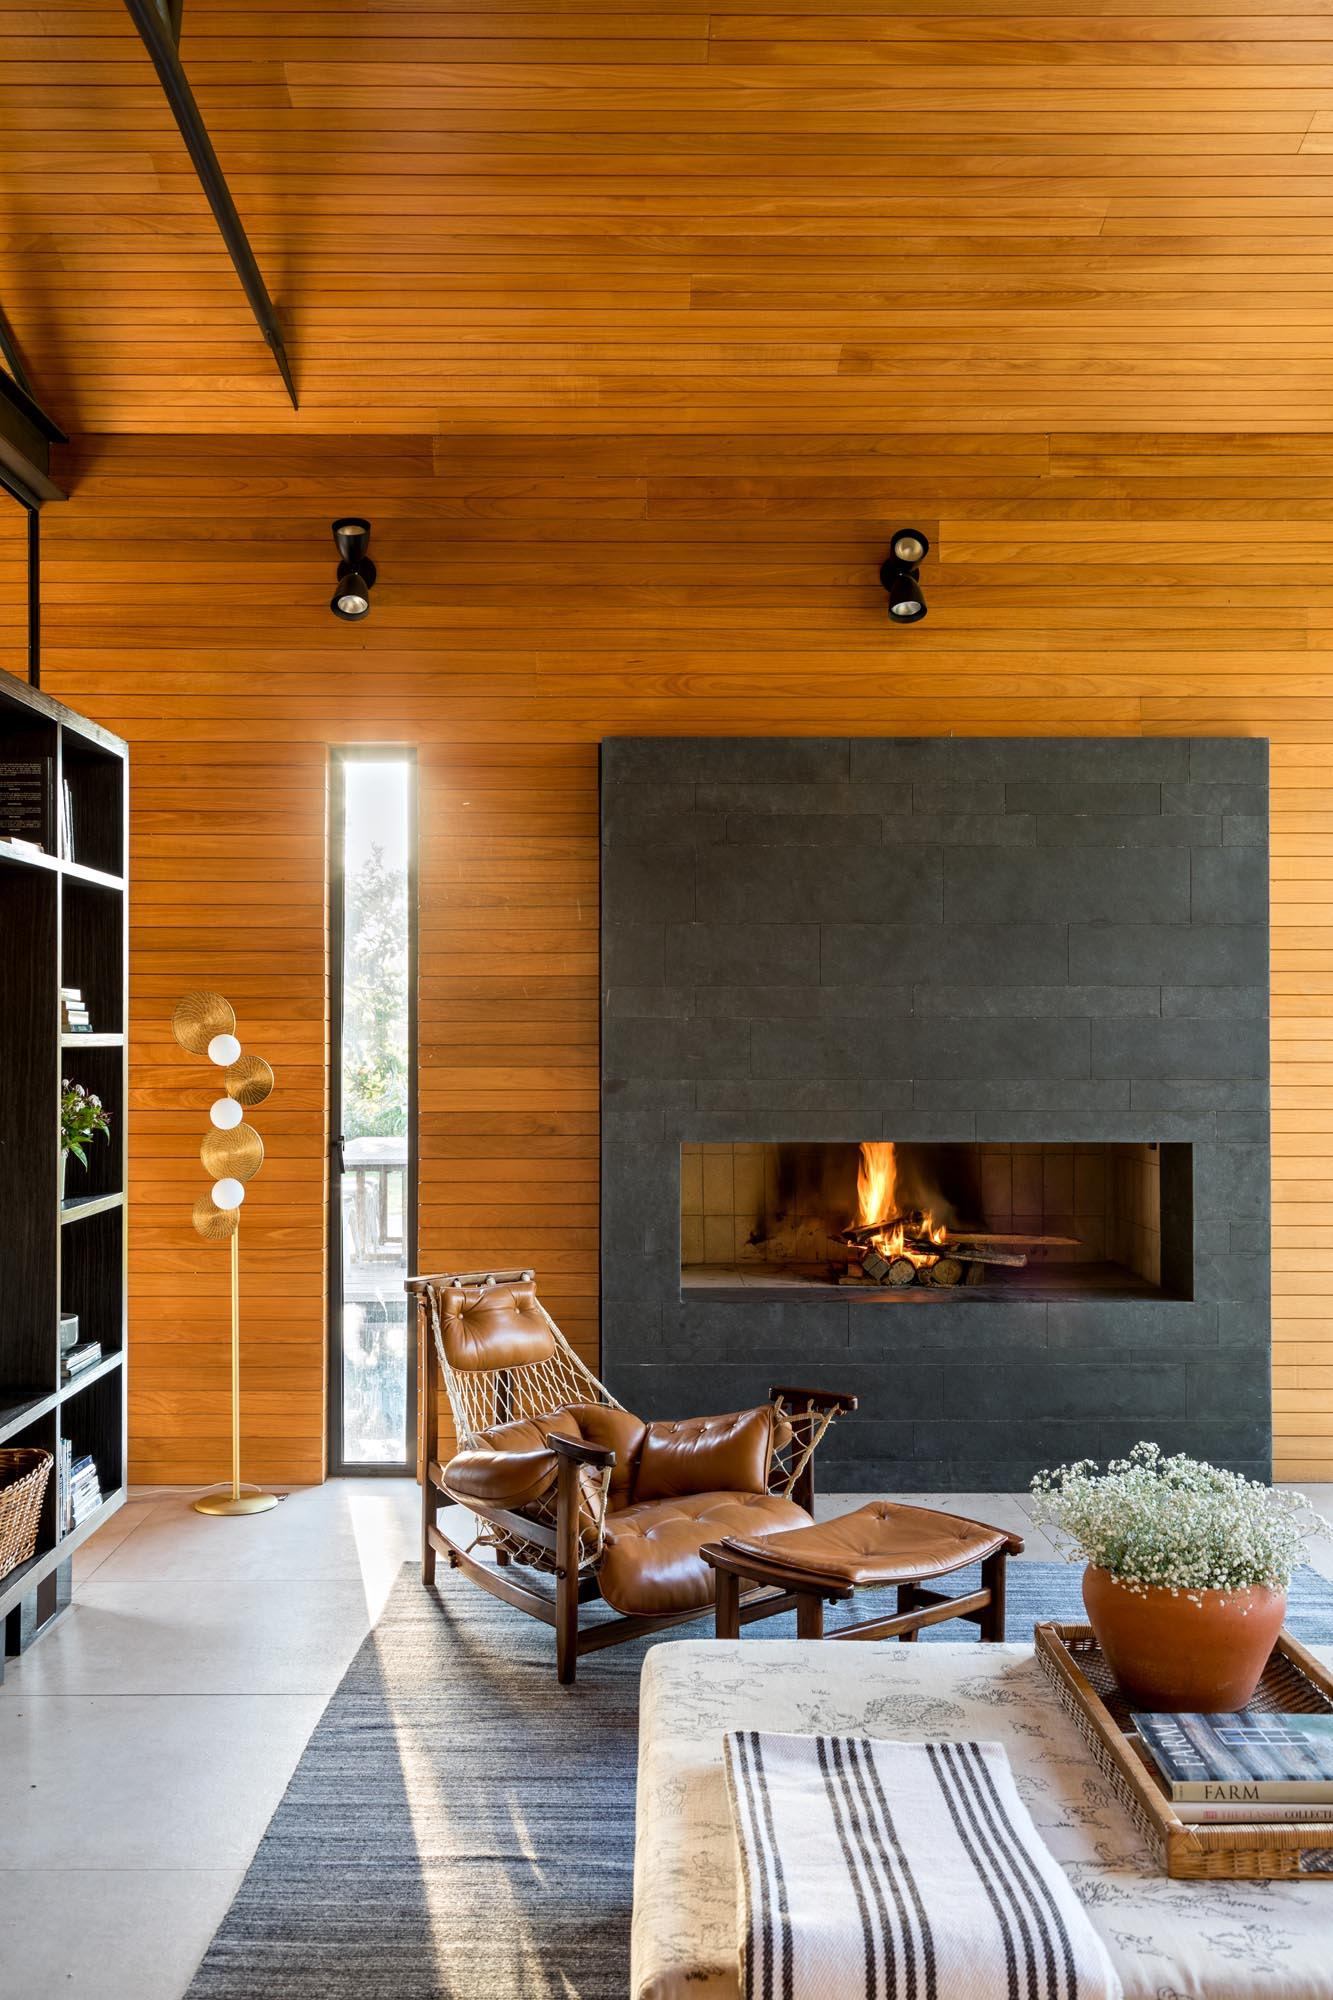 This modern living room is open to the swimming pool, and is furnished with a pair of couches, armchairs, and a fireplace. The room divider is a mirror image of the other side, with shelving and a mounted TV.